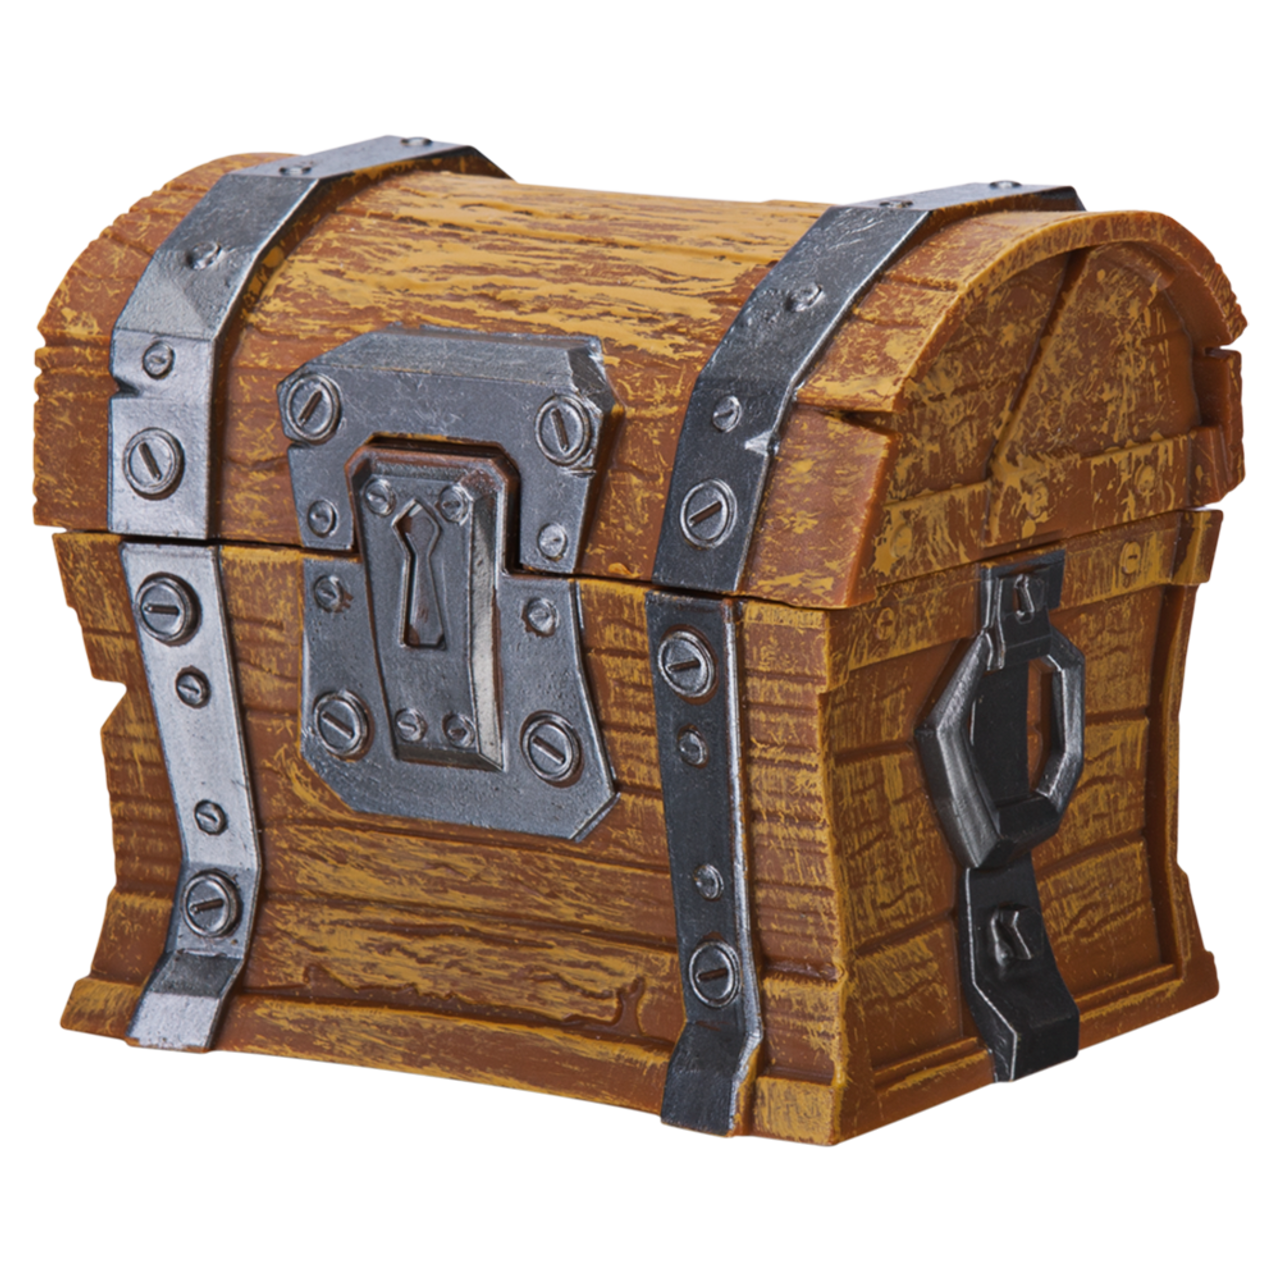 Fortnite Loot Chest Collectible Accessory Blind Box